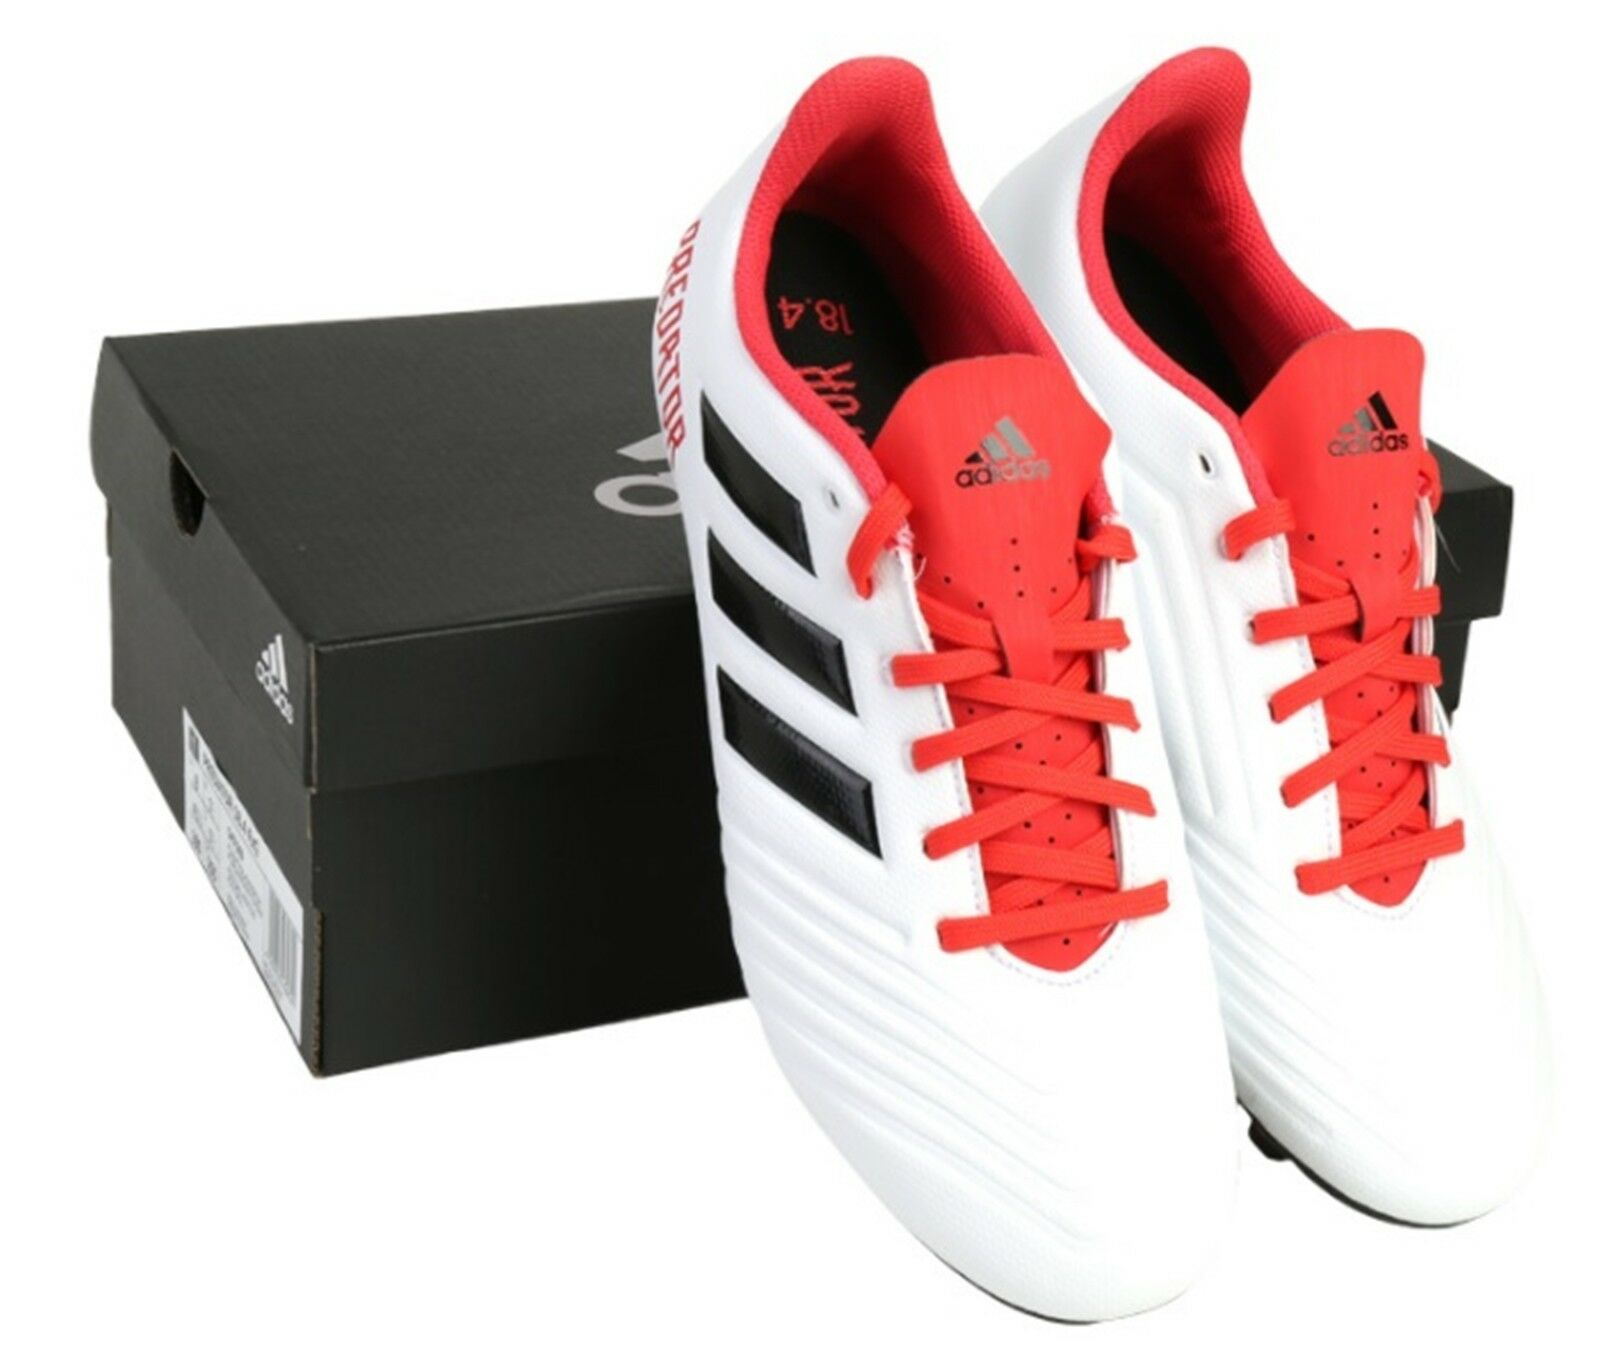 80160795a ... switzerland adidas men predator 18.4 cm7669 fxg cleats soccer white red  football shoes spike cm7669 18.4